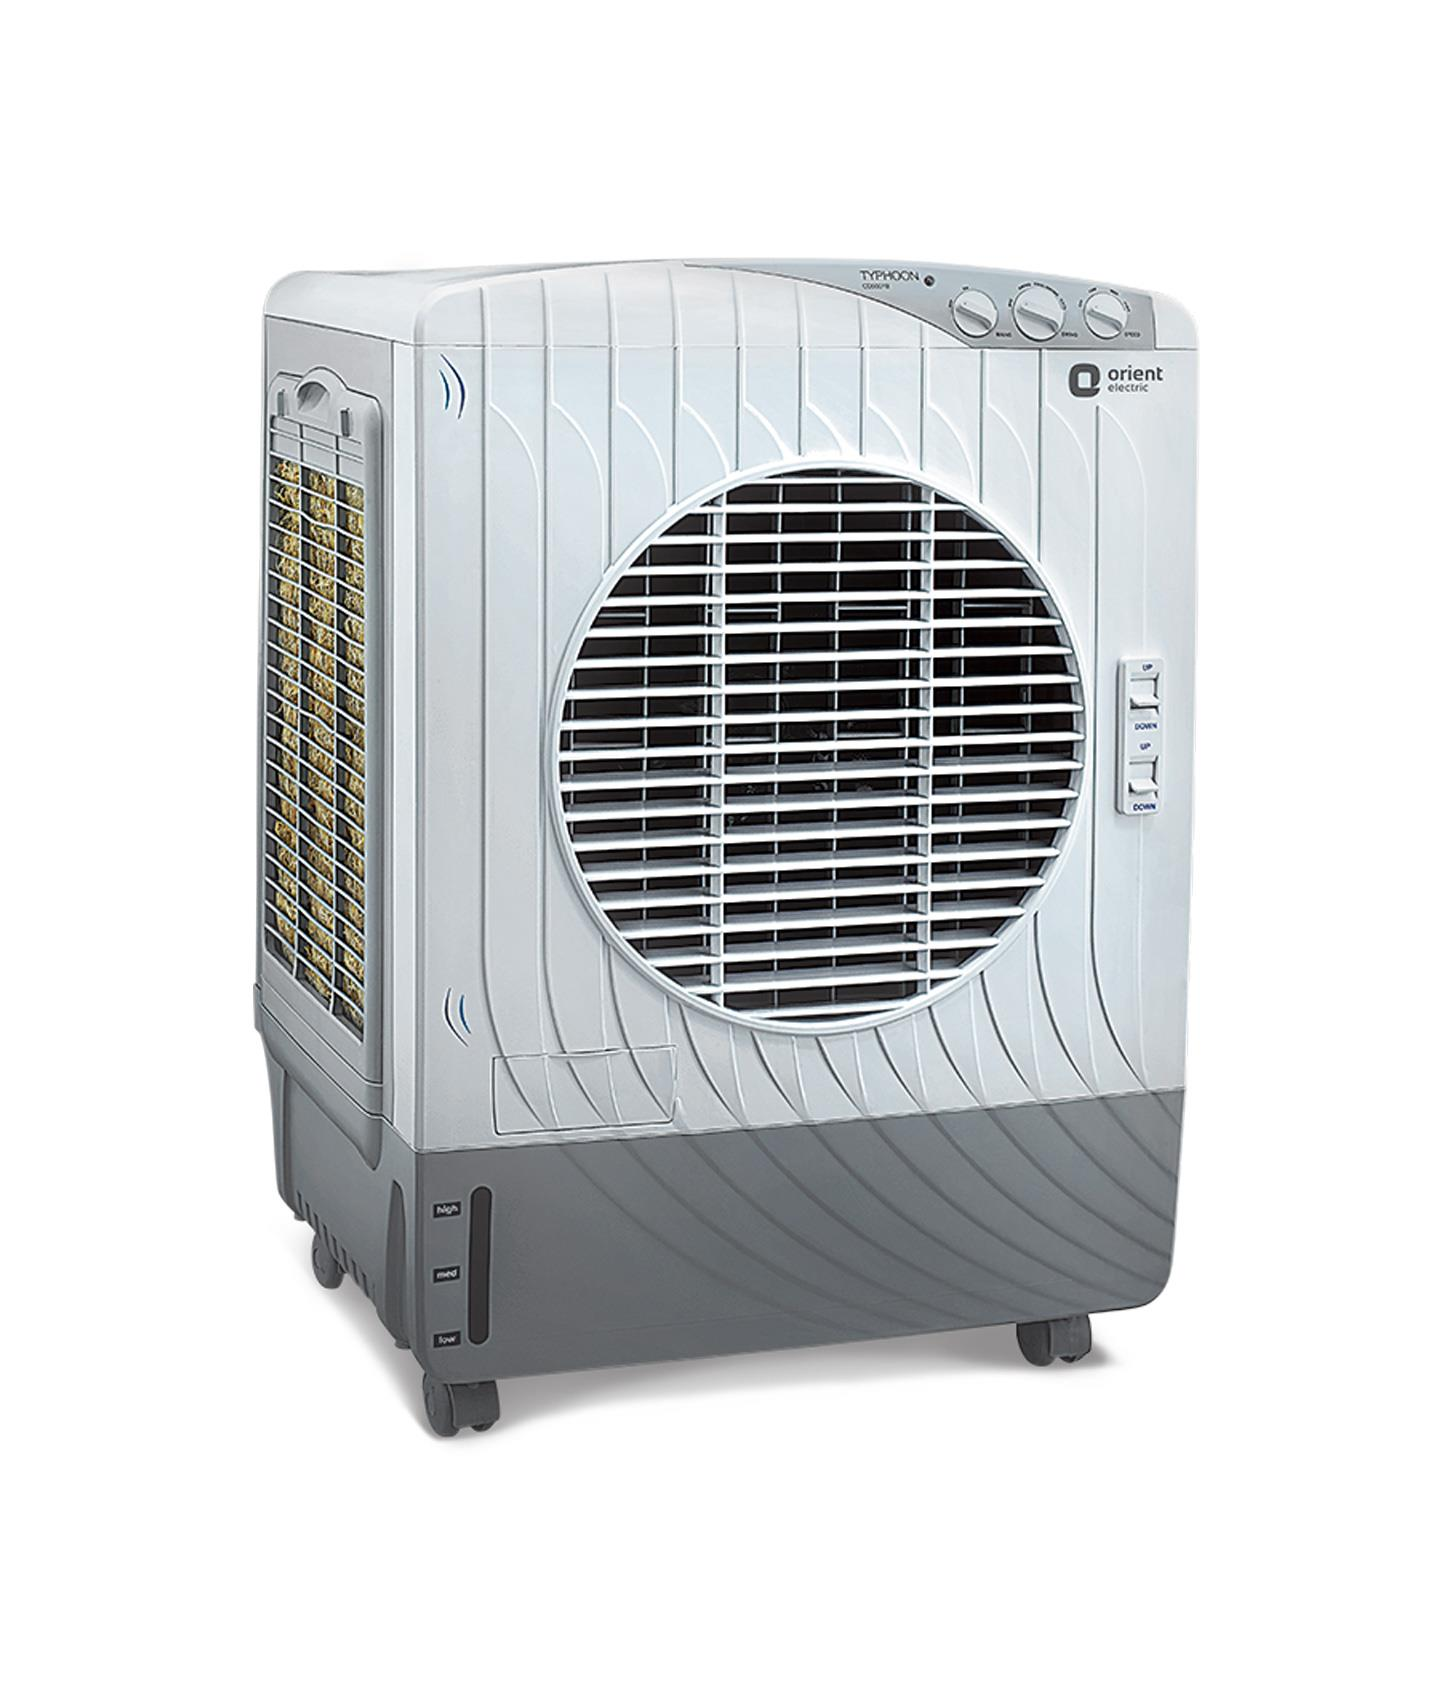 > Air Cooler > Orient Air Cooler > Orient Typhoon CD5001B Air Co  #766947